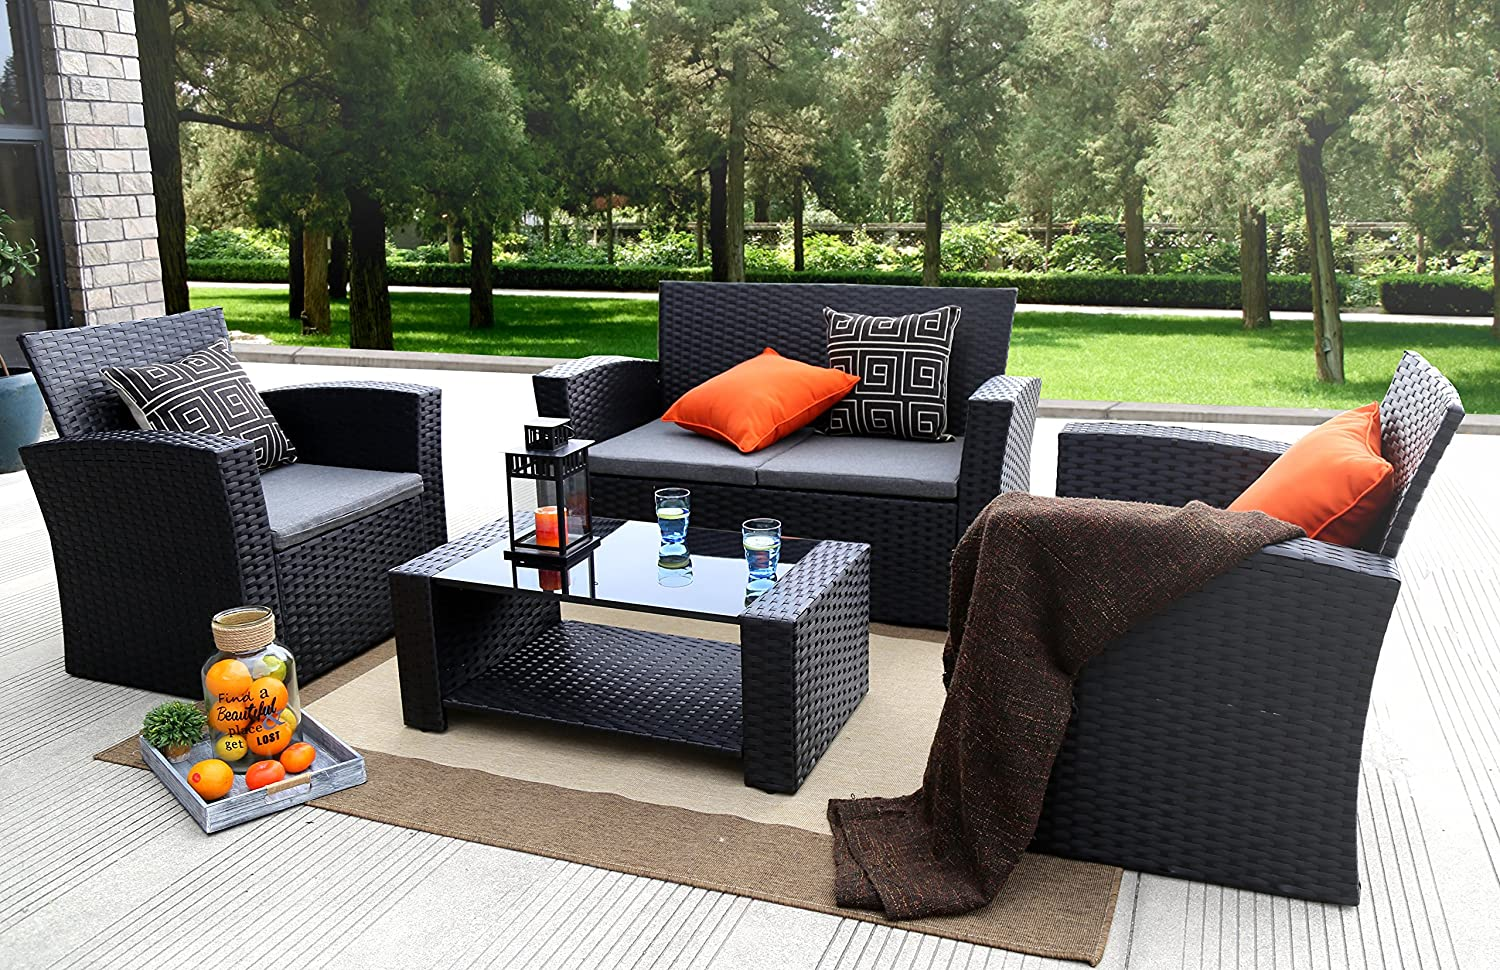 ideas design make awesome raptured that you with will pillows patio furniture for decor home